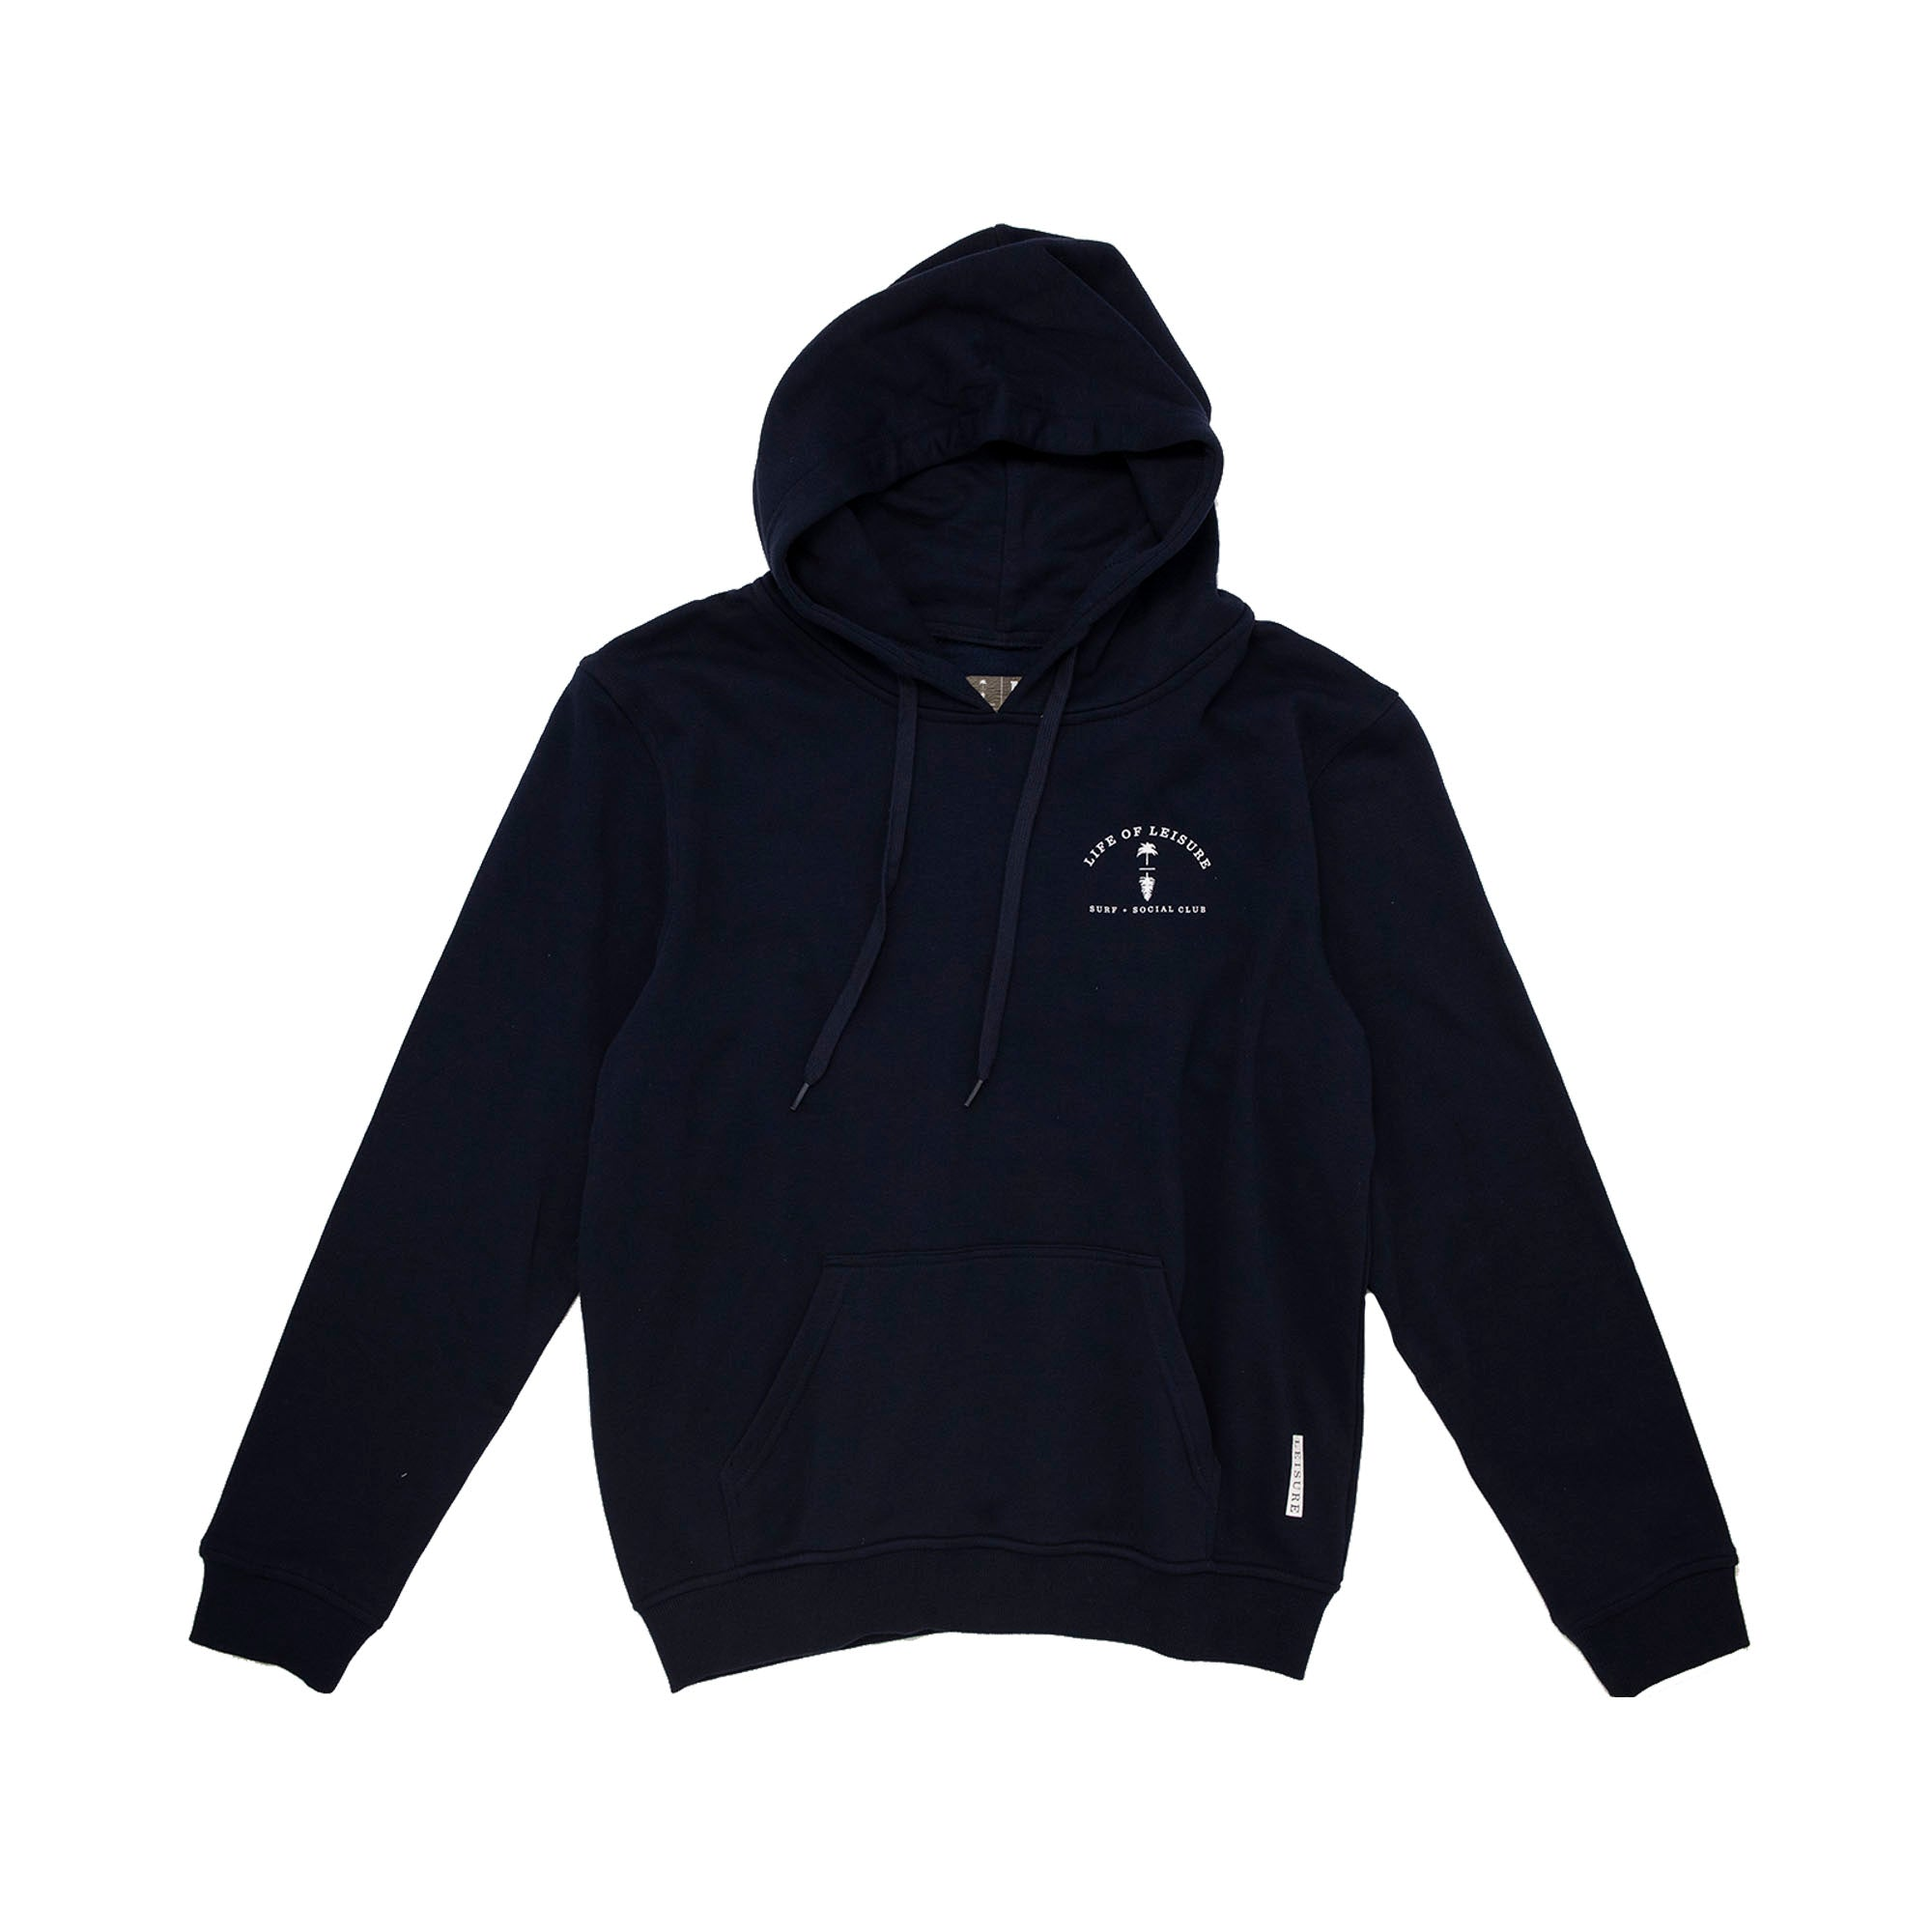 Classic Coat Of Arms Hoodie